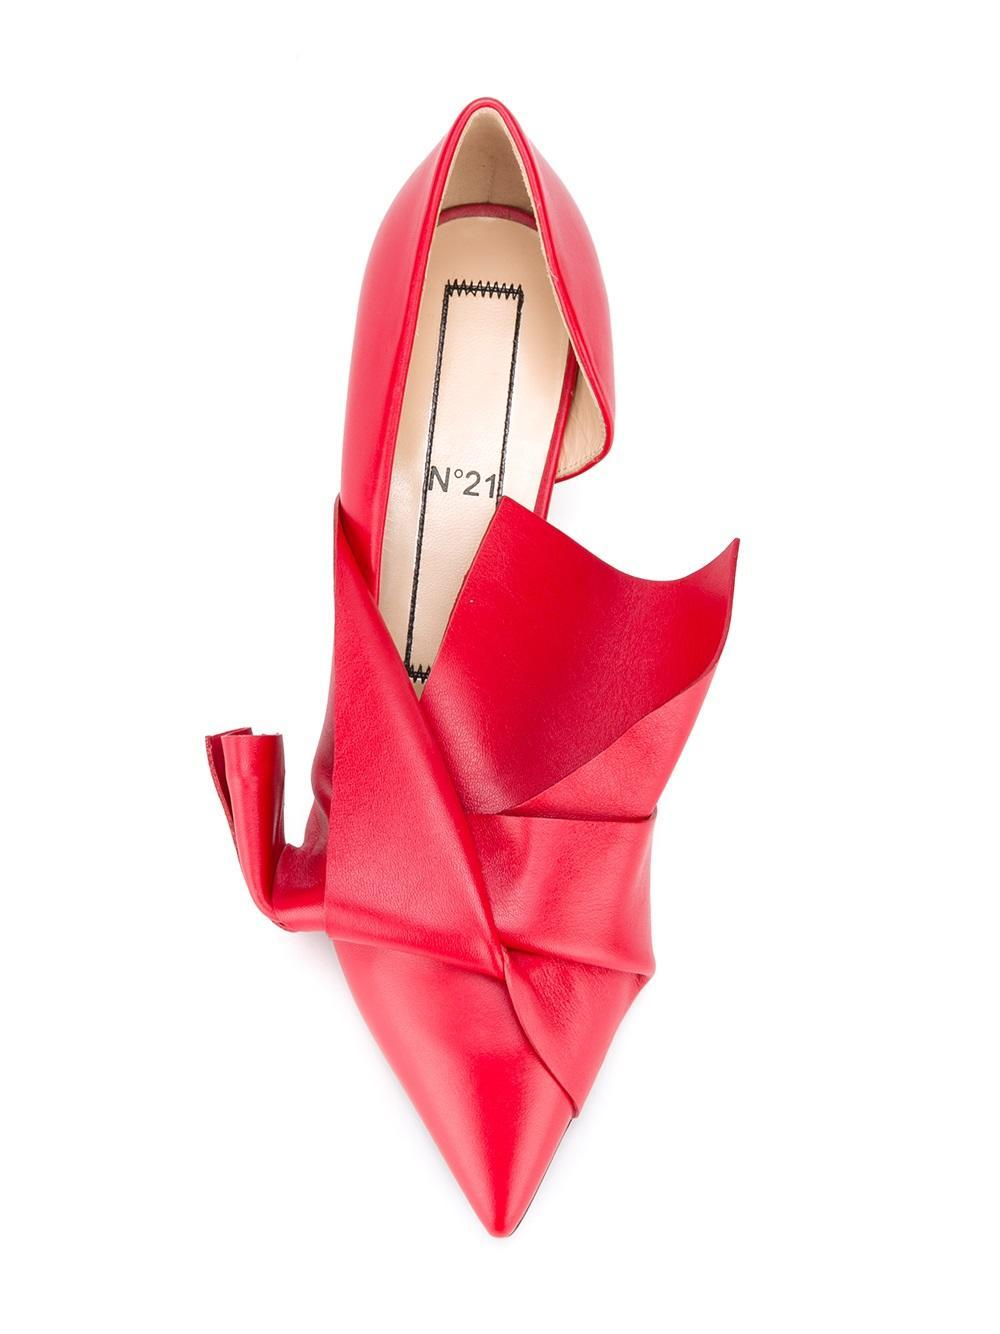 N° santa claus pumps in red lyst